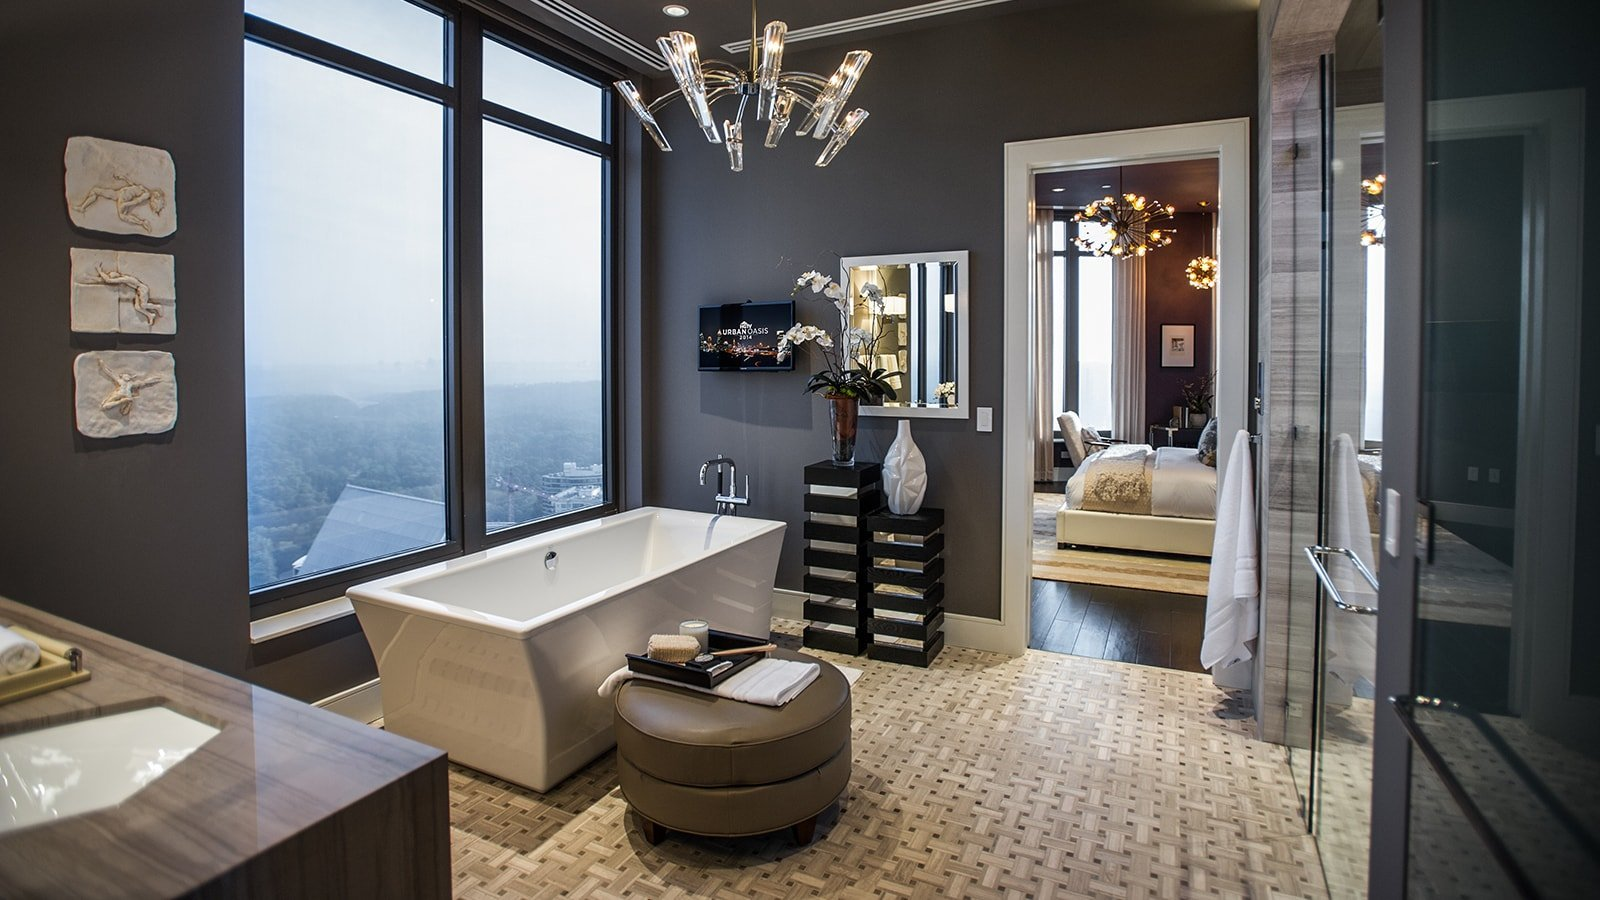 Modern luxurious bathroom